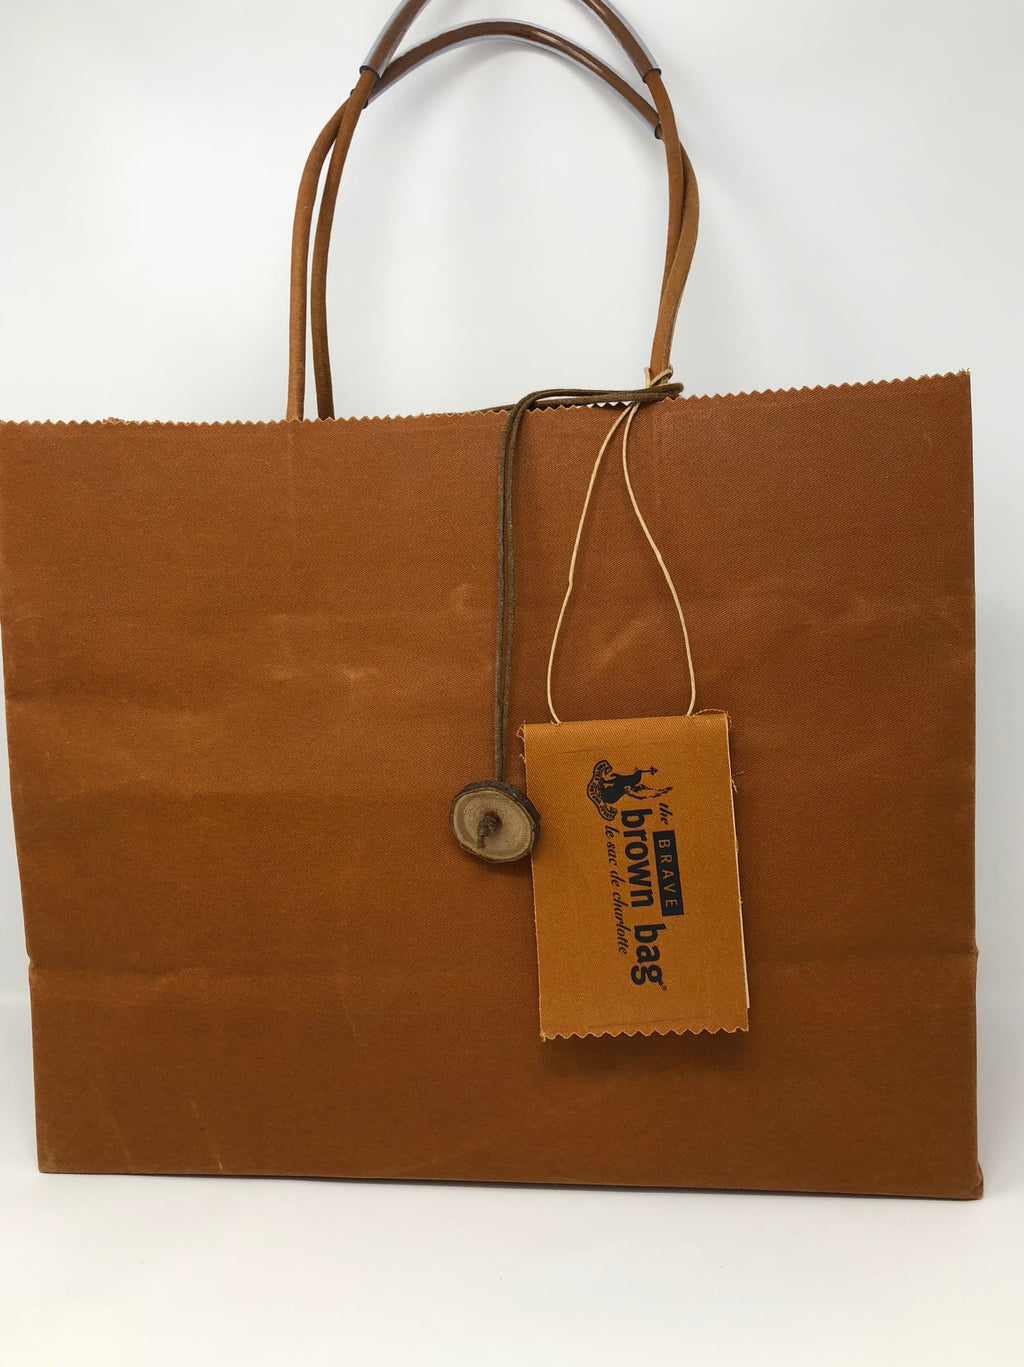 The Brave Brown Bag - Classic Carryall